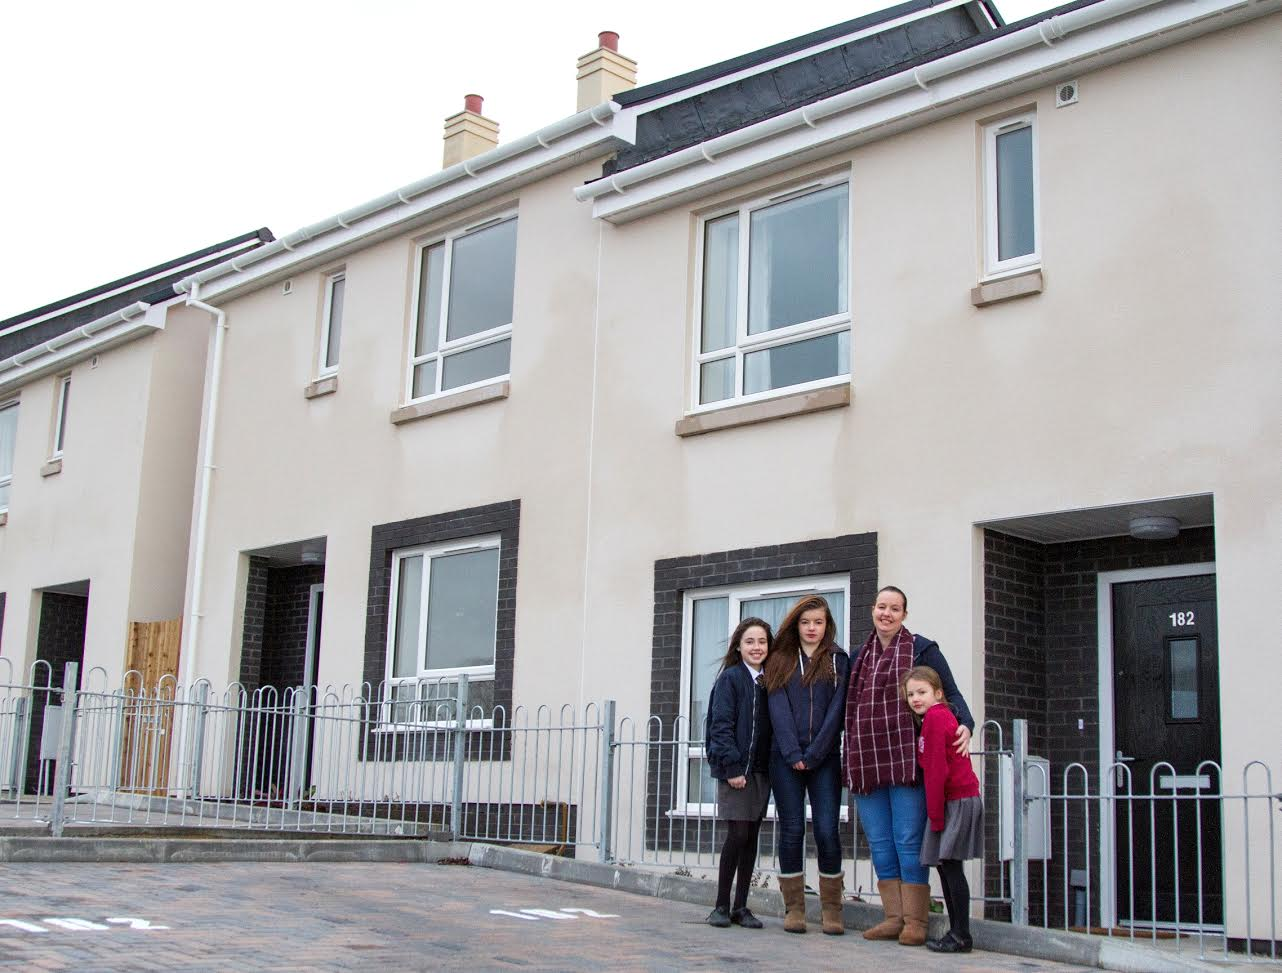 Pictured left to right: Tiani, Phoebe, Coraley & Macie Driver outside their new council home in Bisley Old Road, Stroud. Photo by Theseus Lythgoe.